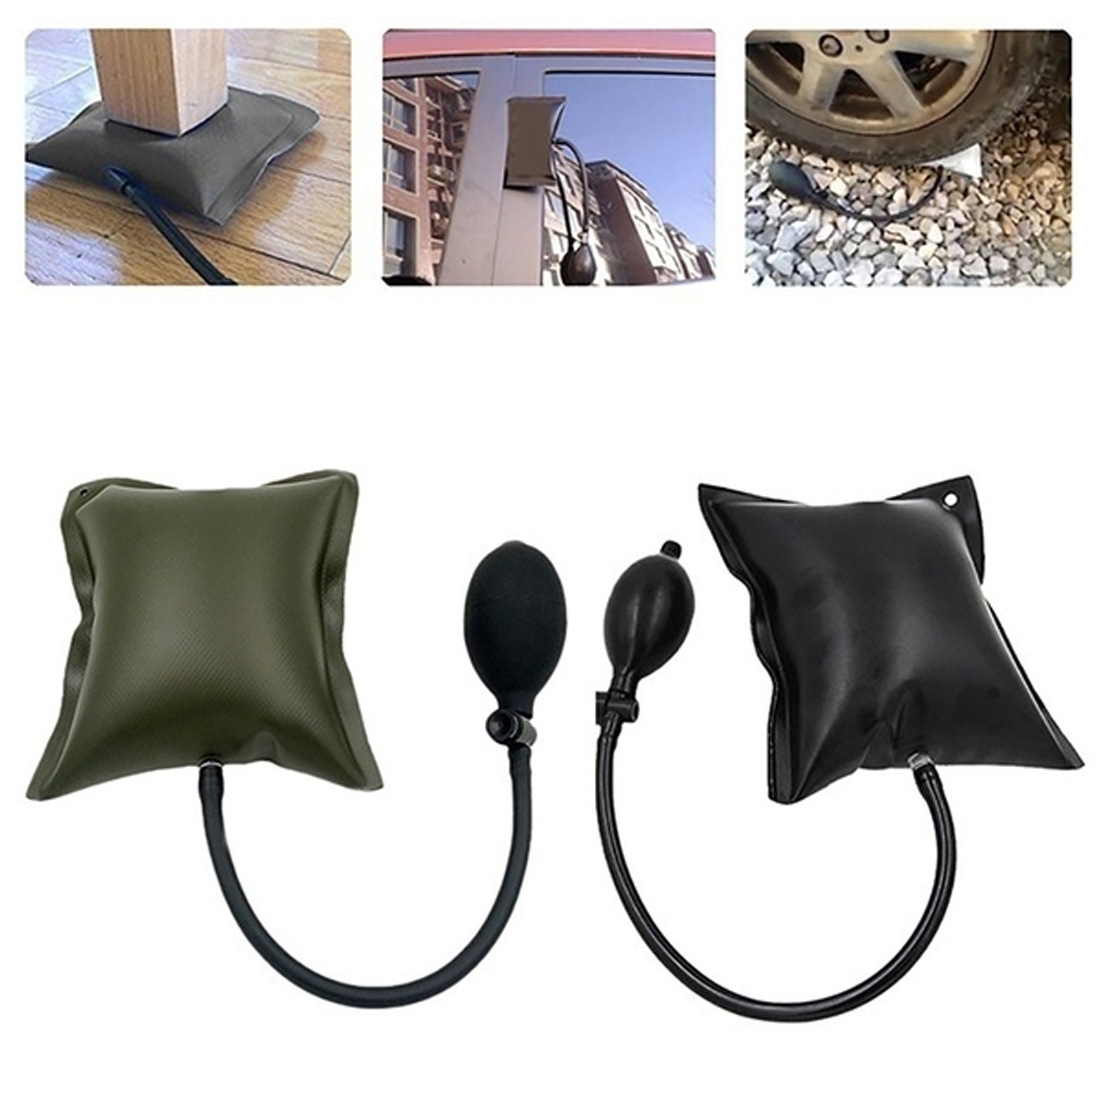 Auto Repair Tool Thickened Car Door Repair Air Cushion Emergency Open Unlock Tool Kit 1PCS Adjustable Car Air Pump